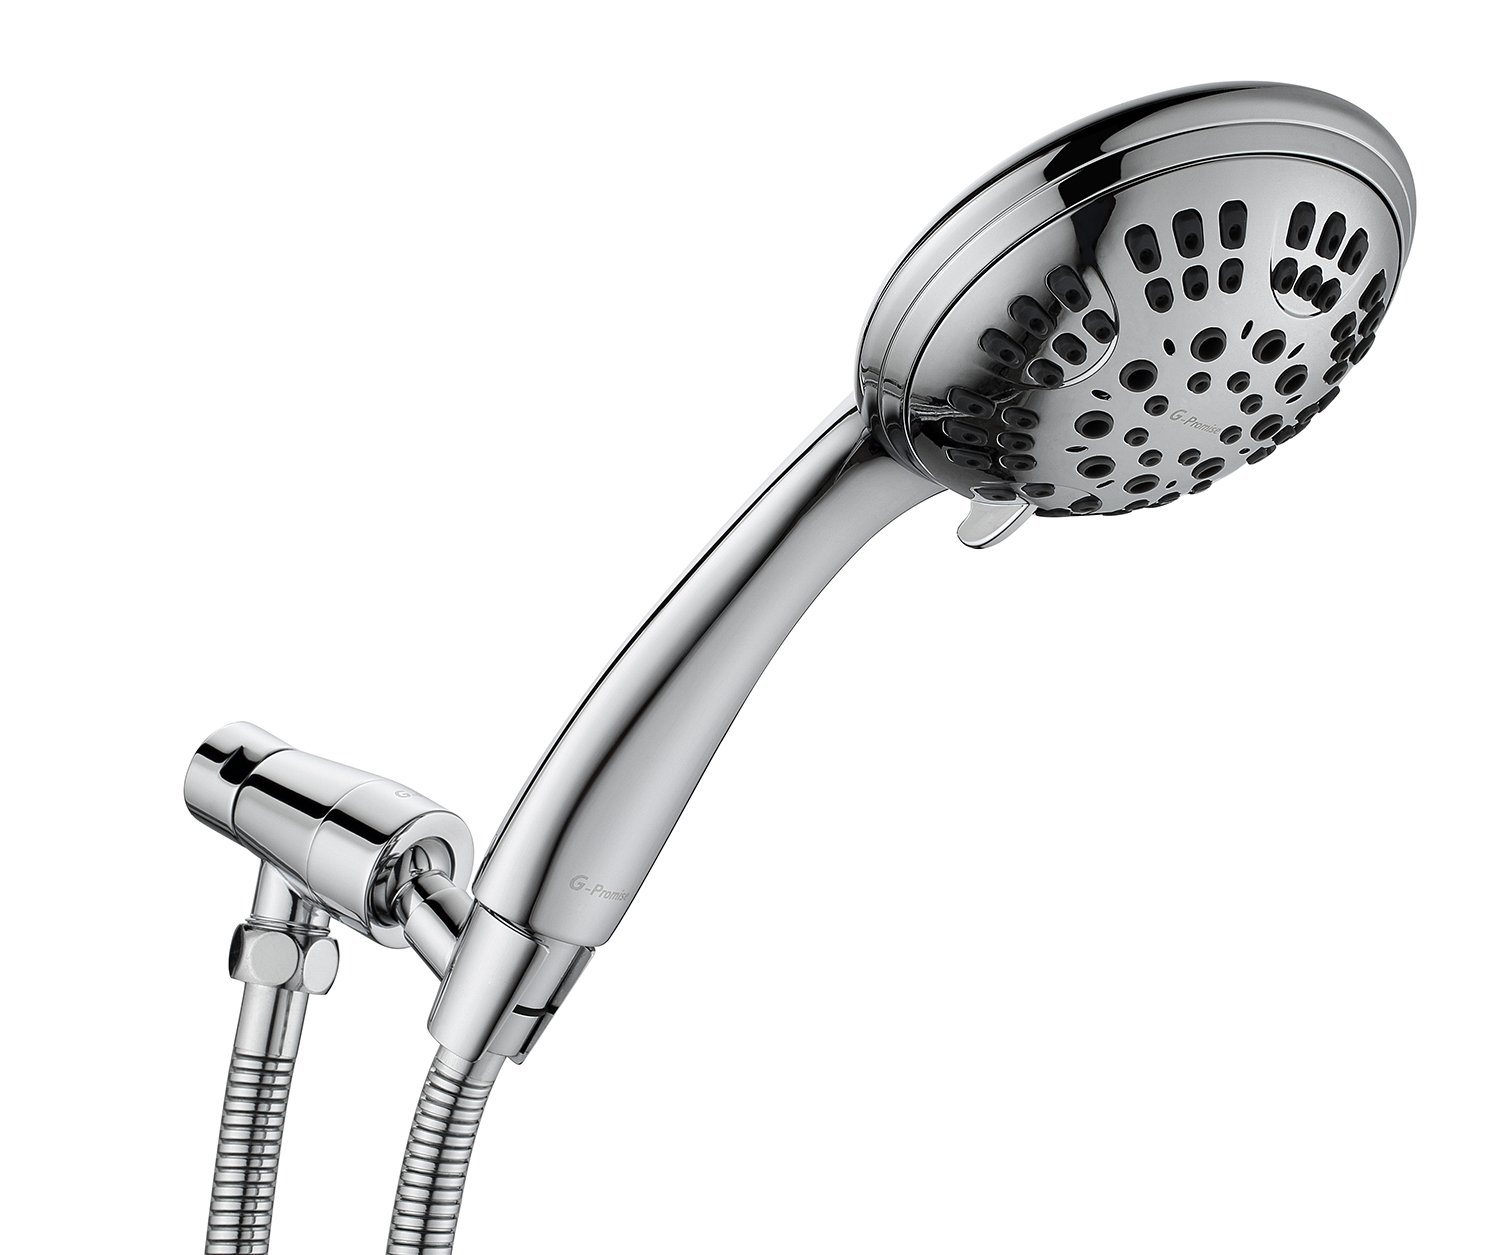 Best Rated In Handheld Showerheads Helpful Customer Reviews Wye Delta Wiring Diagram Tubs Over Head G Promise High Pressure Shower 6 Spray Setting Hand Held Heads With Adjustable